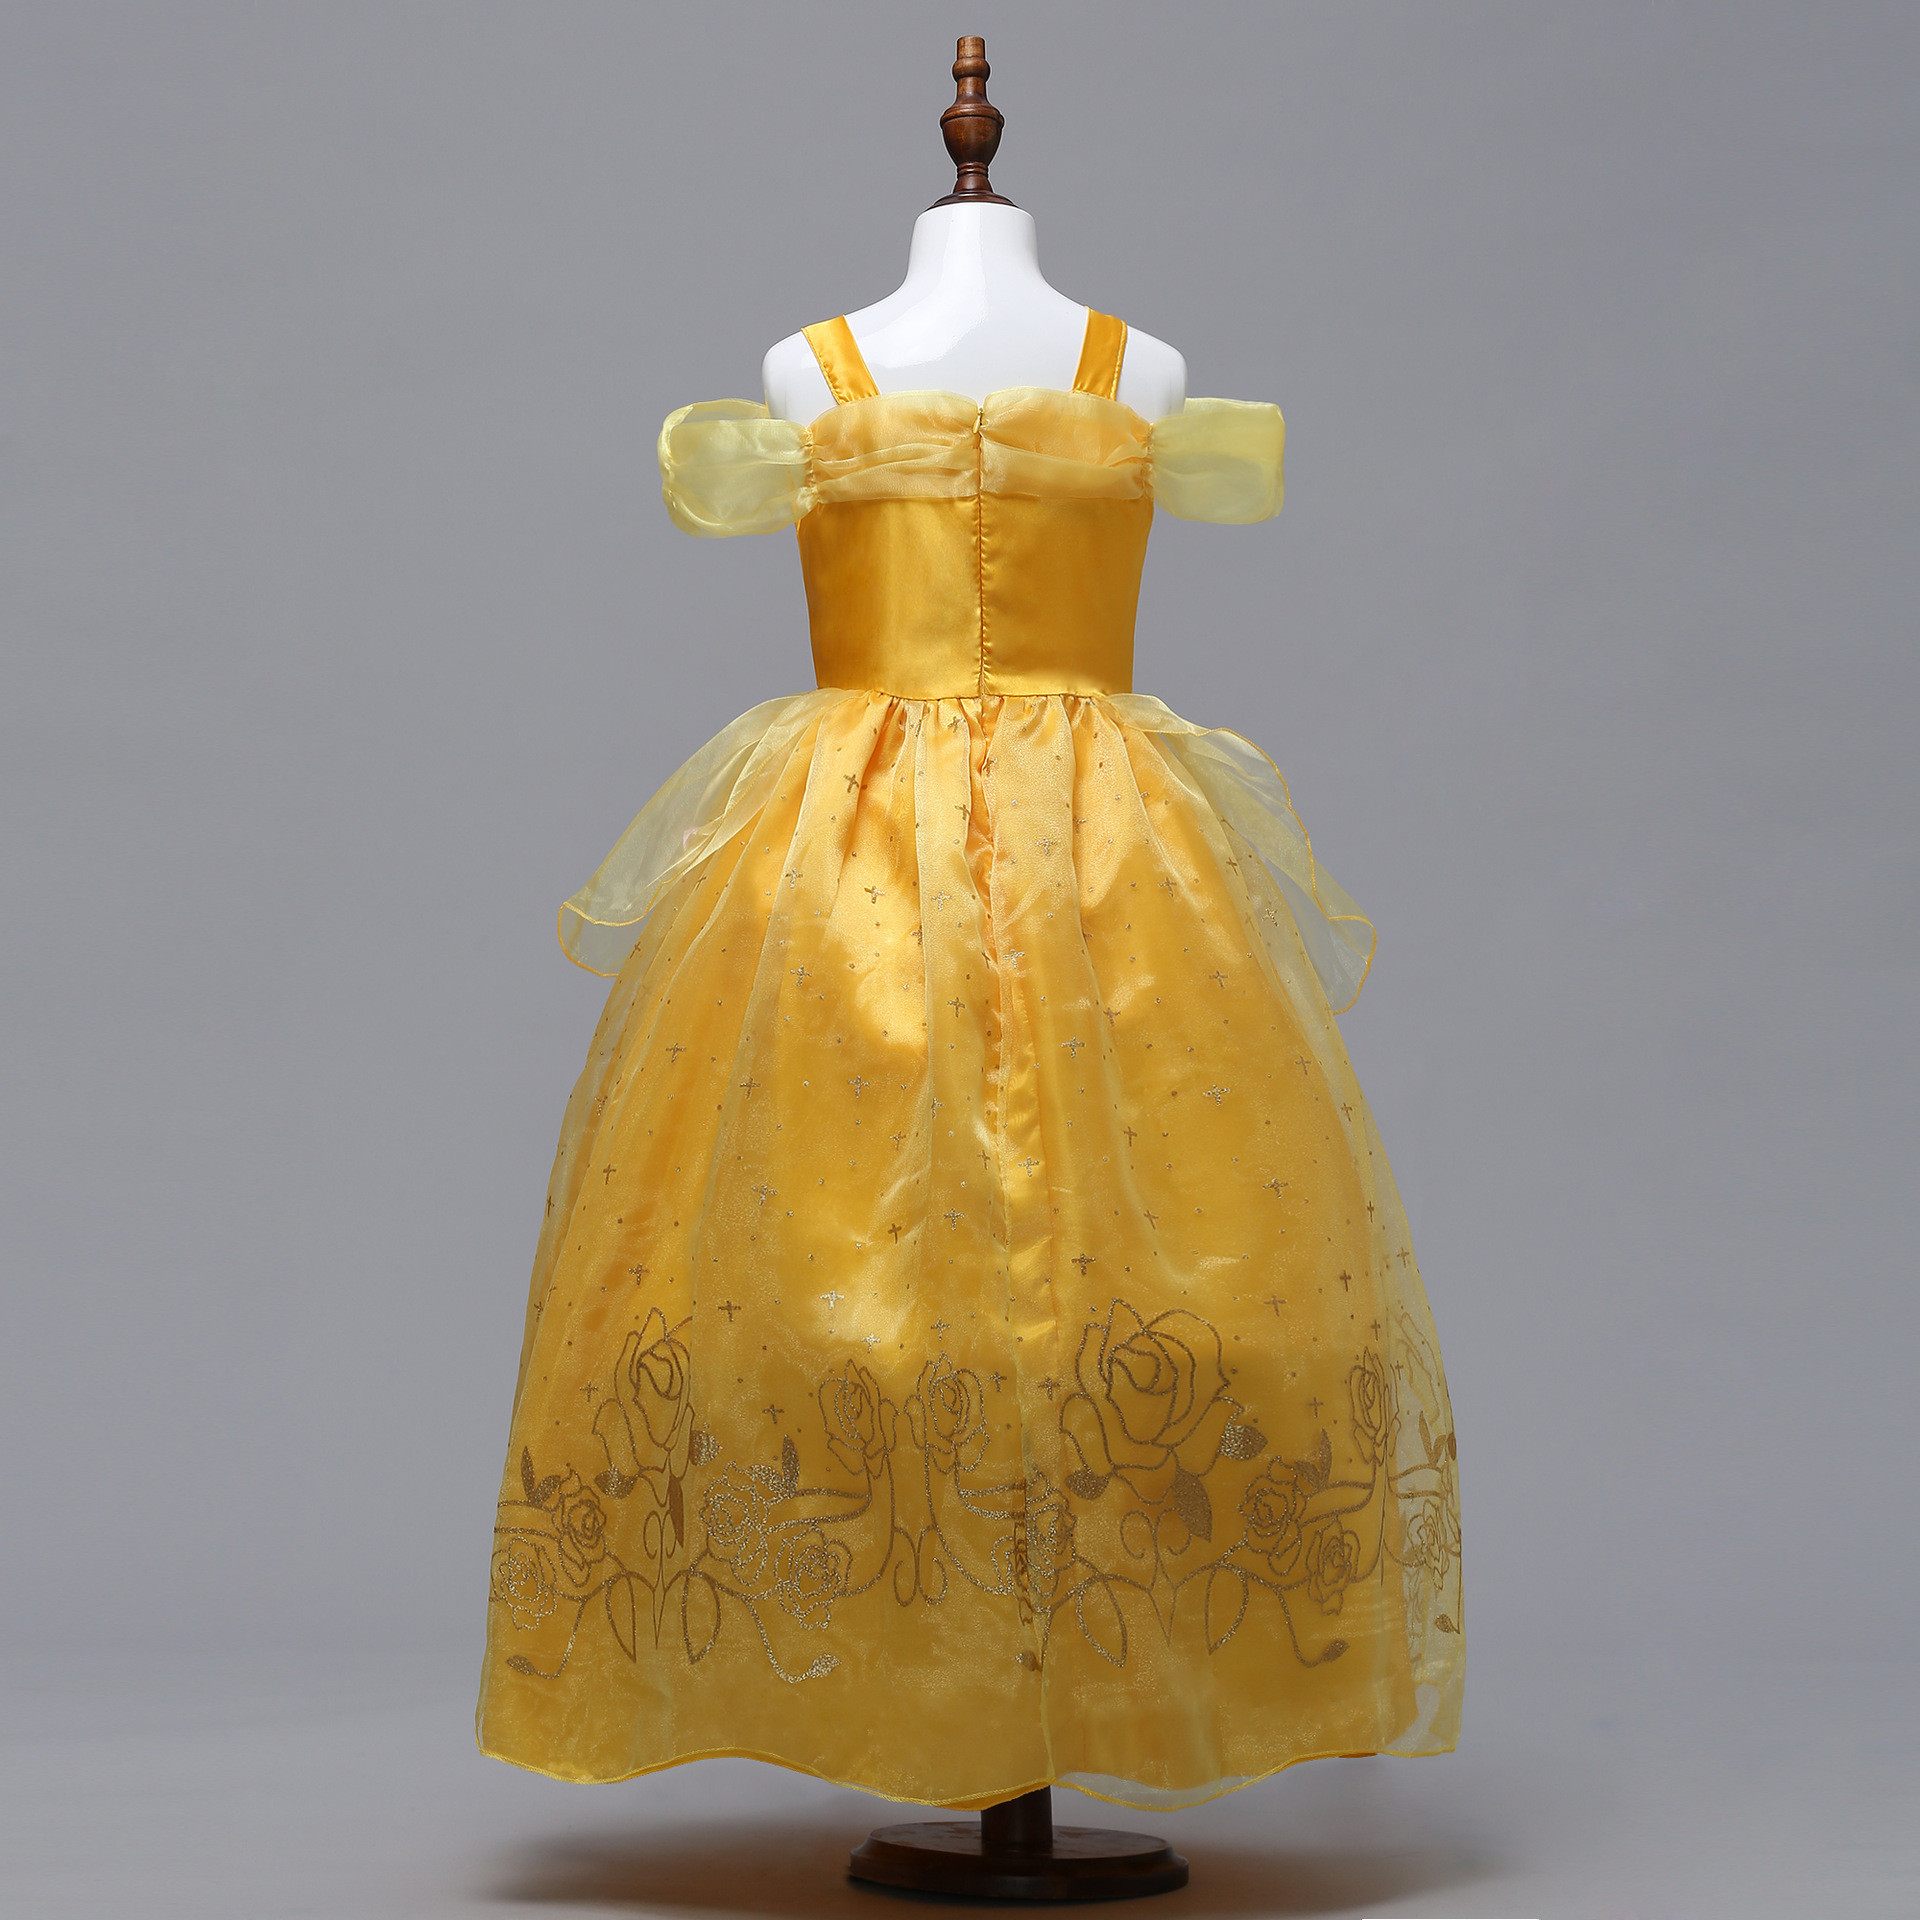 Halloween Girls COS Clothing Princess Dress Beauty And The Beast Dress Camisole Off-Shoulder CHILDREN'S Costume